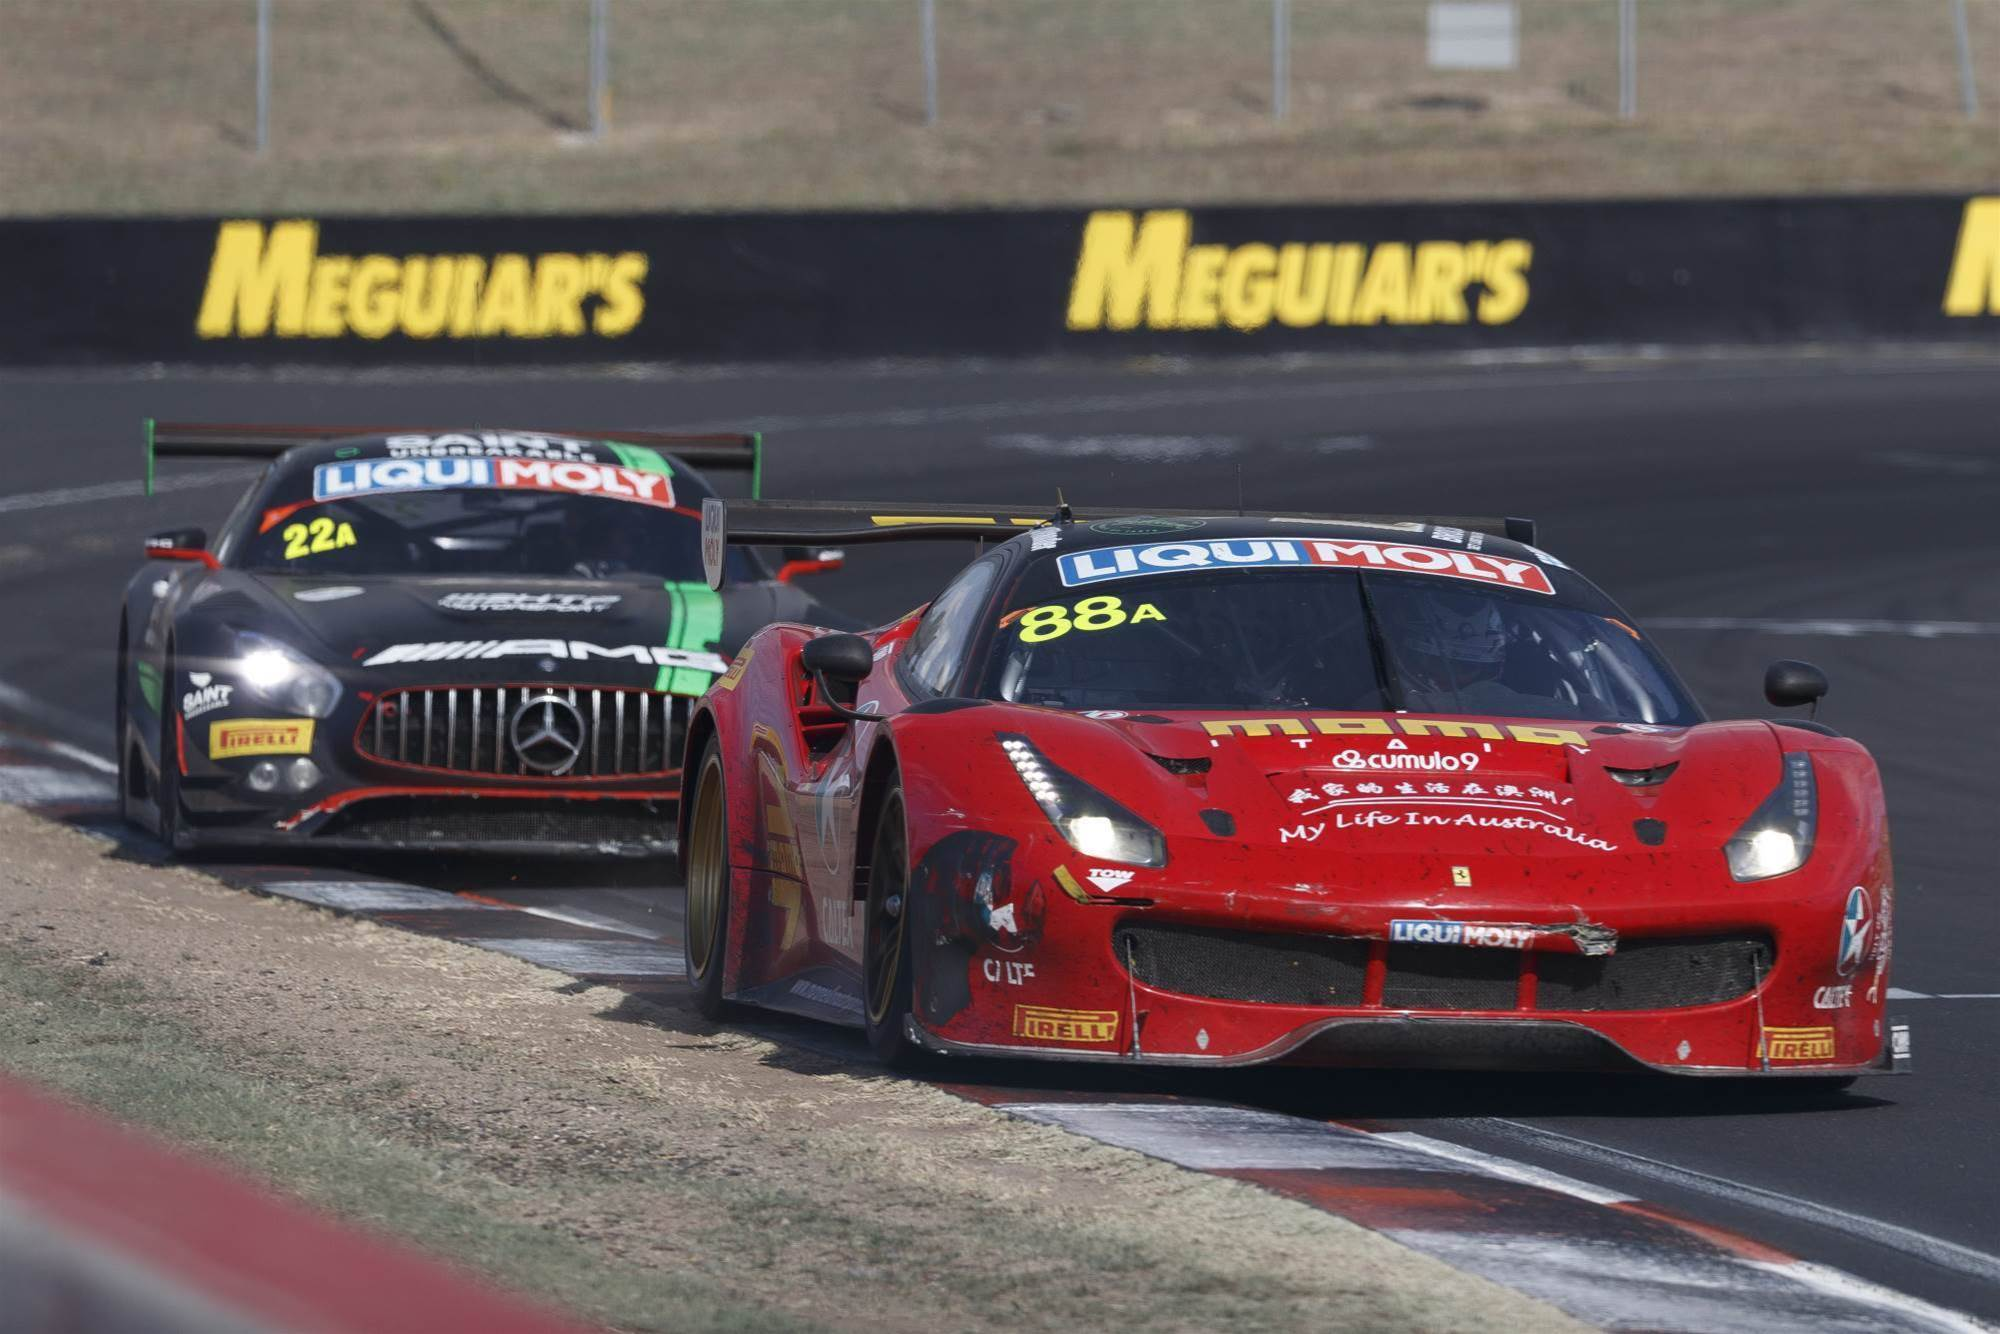 Ferrari team aims for back-to-back Bathurst wins